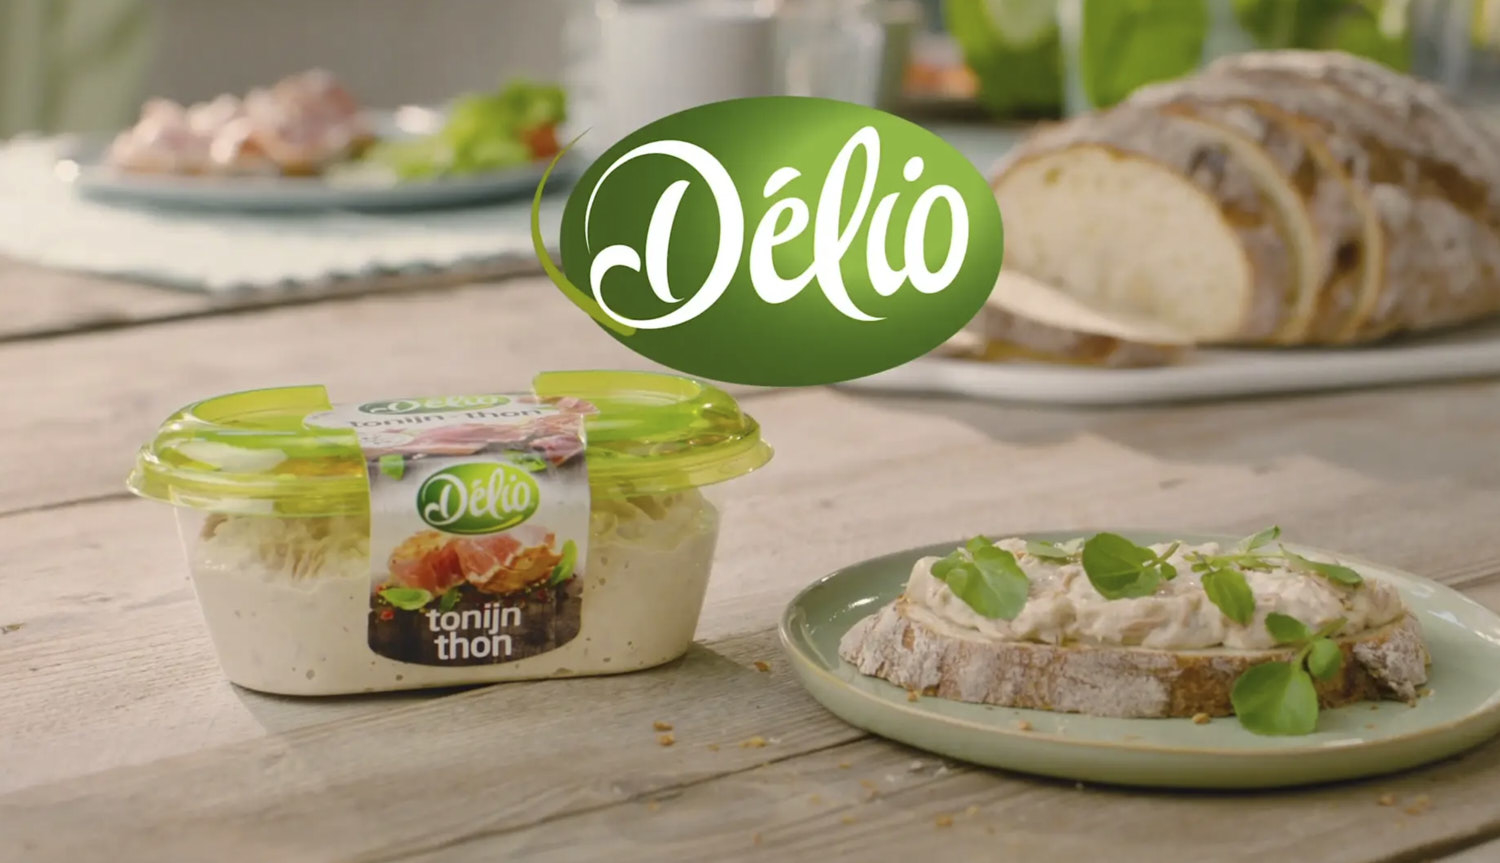 container of délio tuna salad on a rustic wooden table with slice of bread and tuna salad spread on it